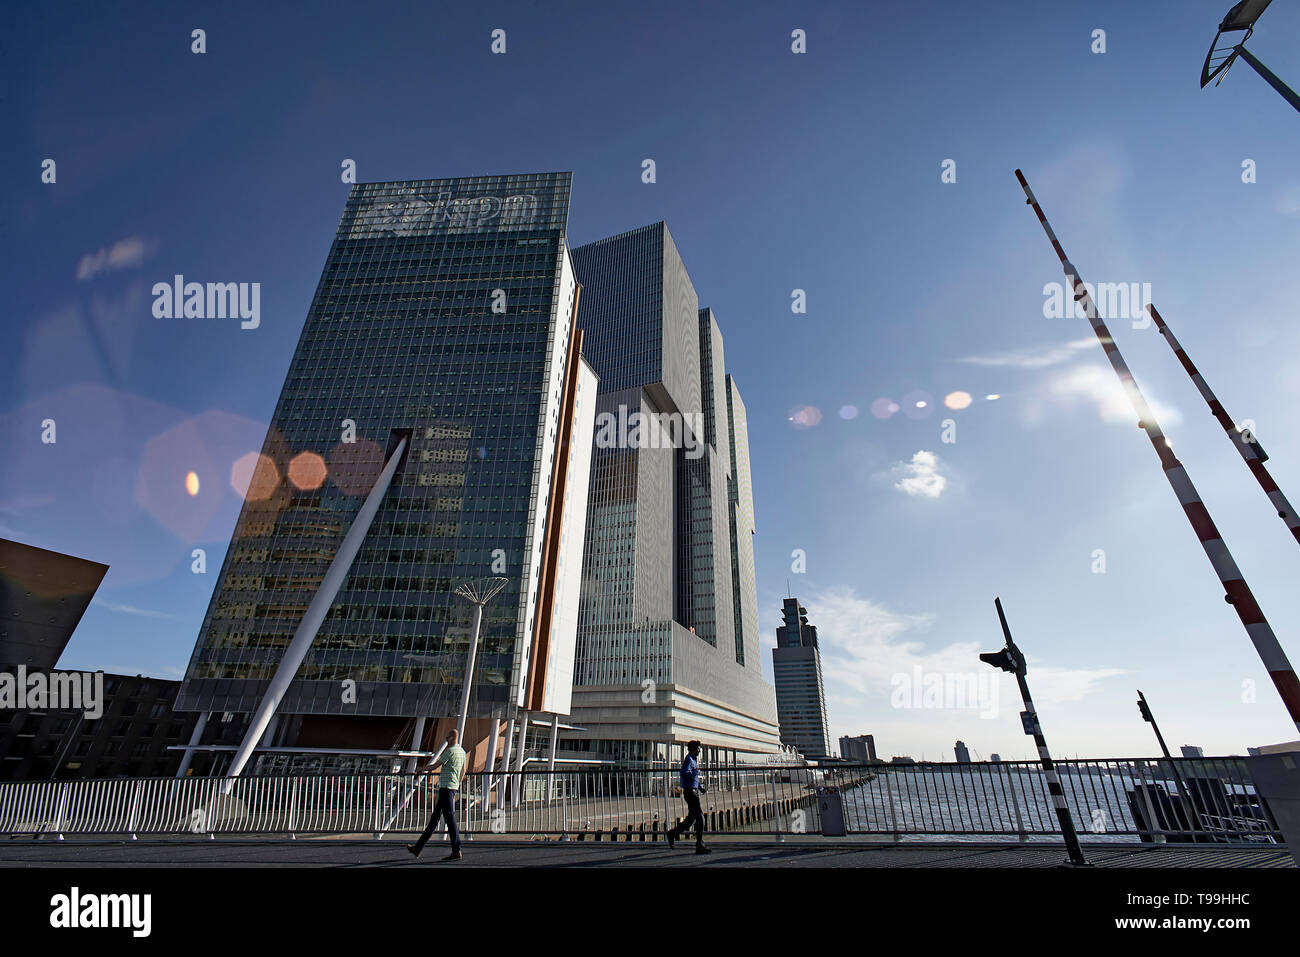 Building De Rotterdam in the city centre of Rotterdam - Stock Image